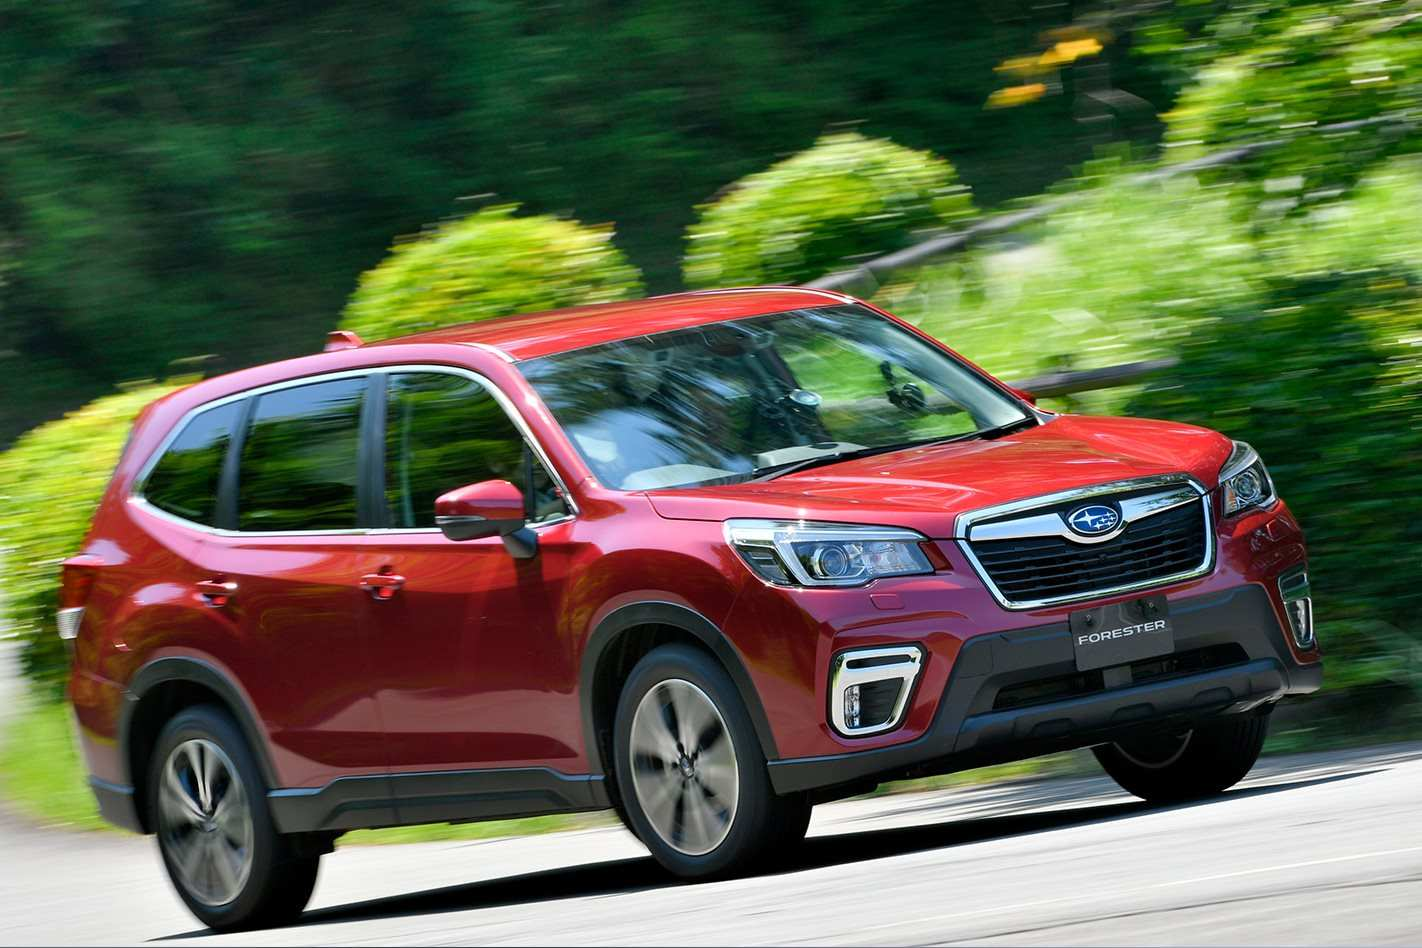 48 Best Review The Subaru 2019 Forester Specs Interior Model for The Subaru 2019 Forester Specs Interior